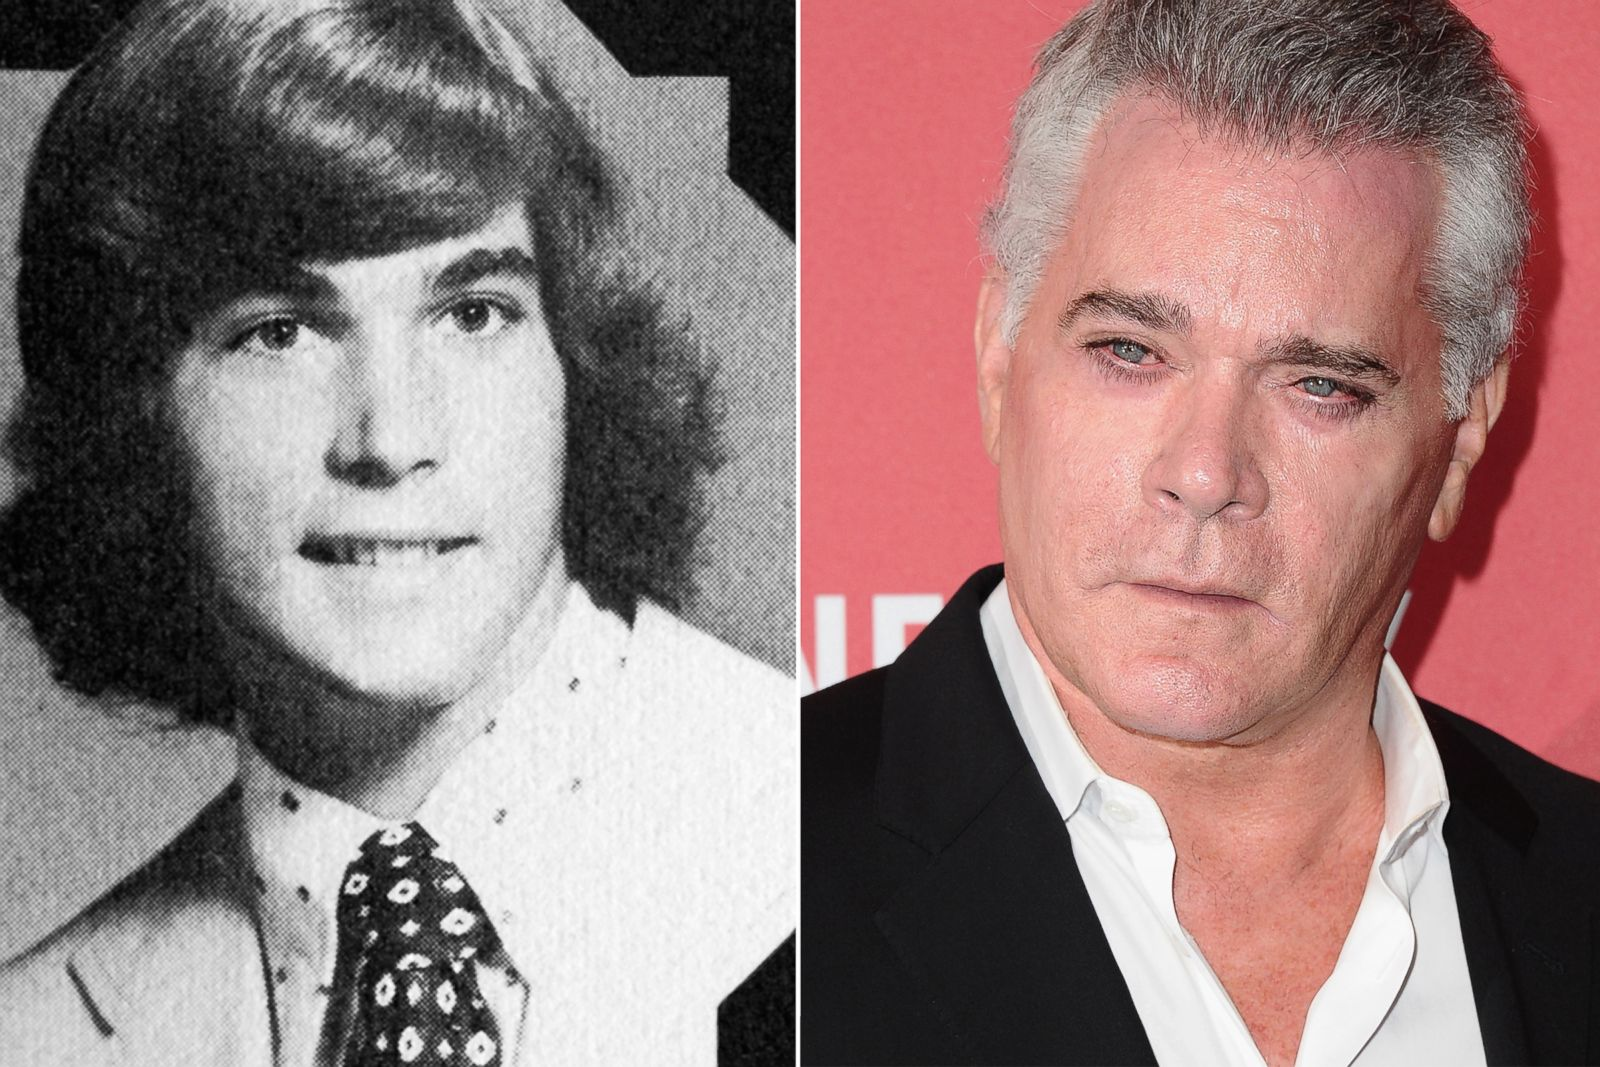 ' ' from the web at 'https://s.abcnews.com/images/Entertainment/ray-liotta-ht-gty-ml-171218_3x2_1600.jpg'